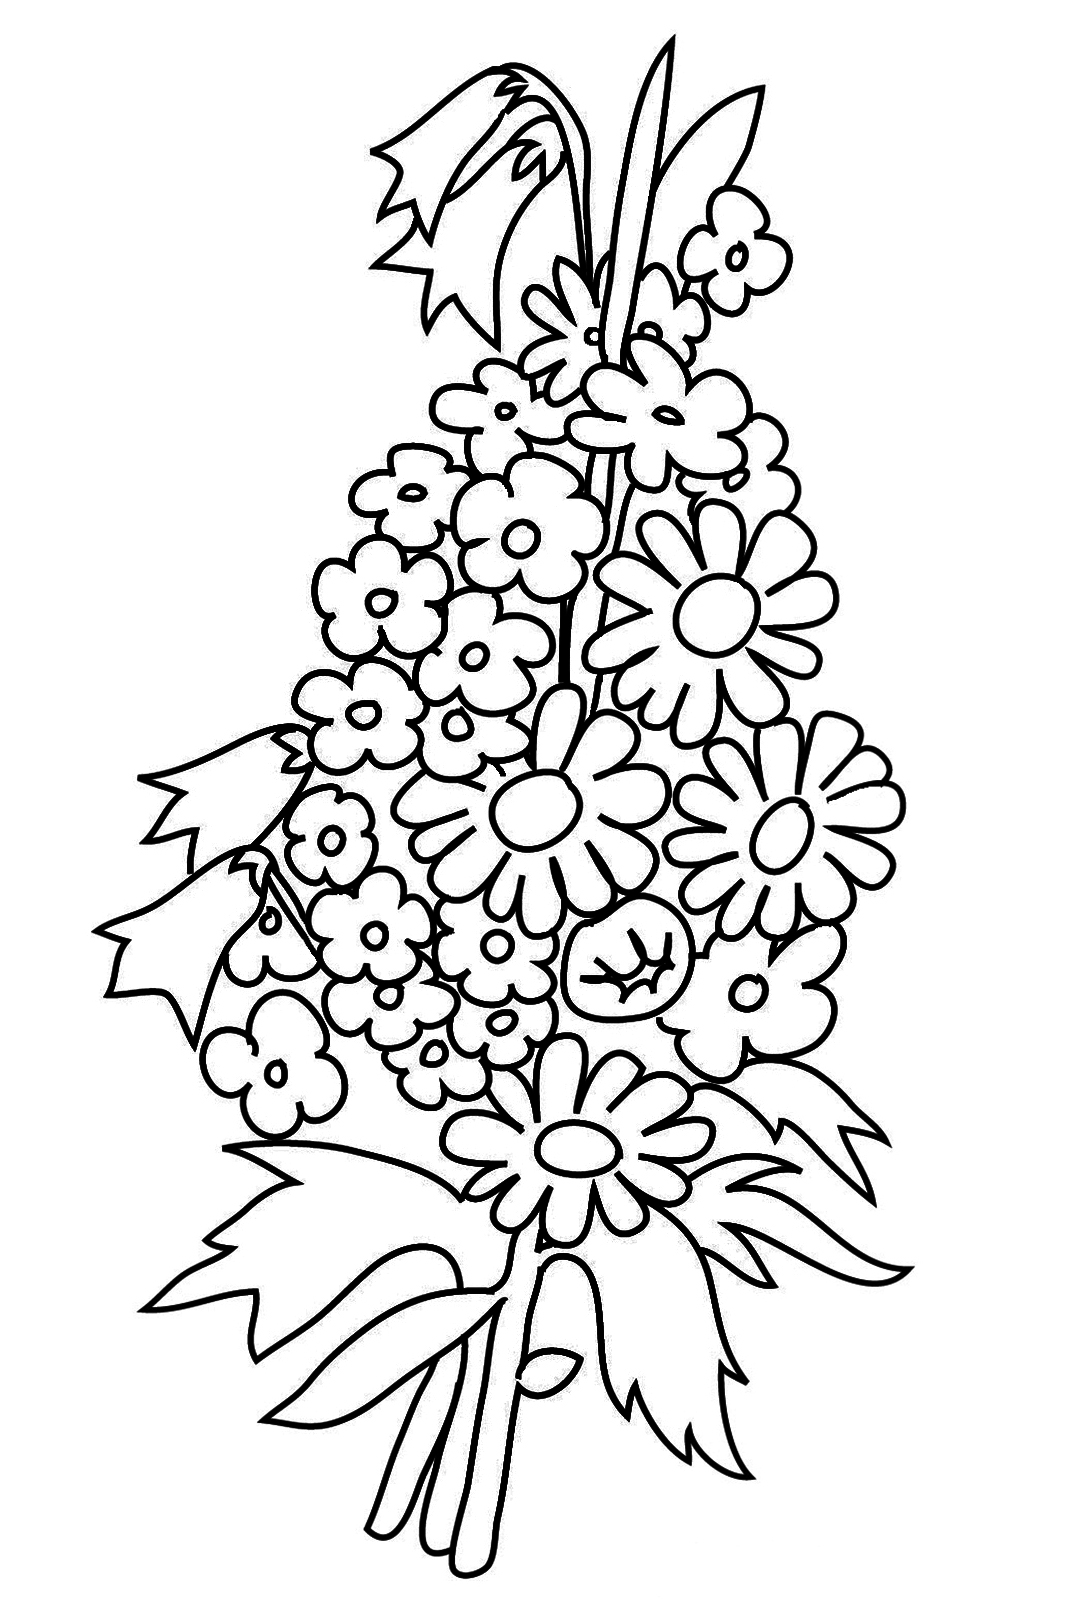 flowers coloring sheet free easy to print flower coloring pages tulamama sheet coloring flowers